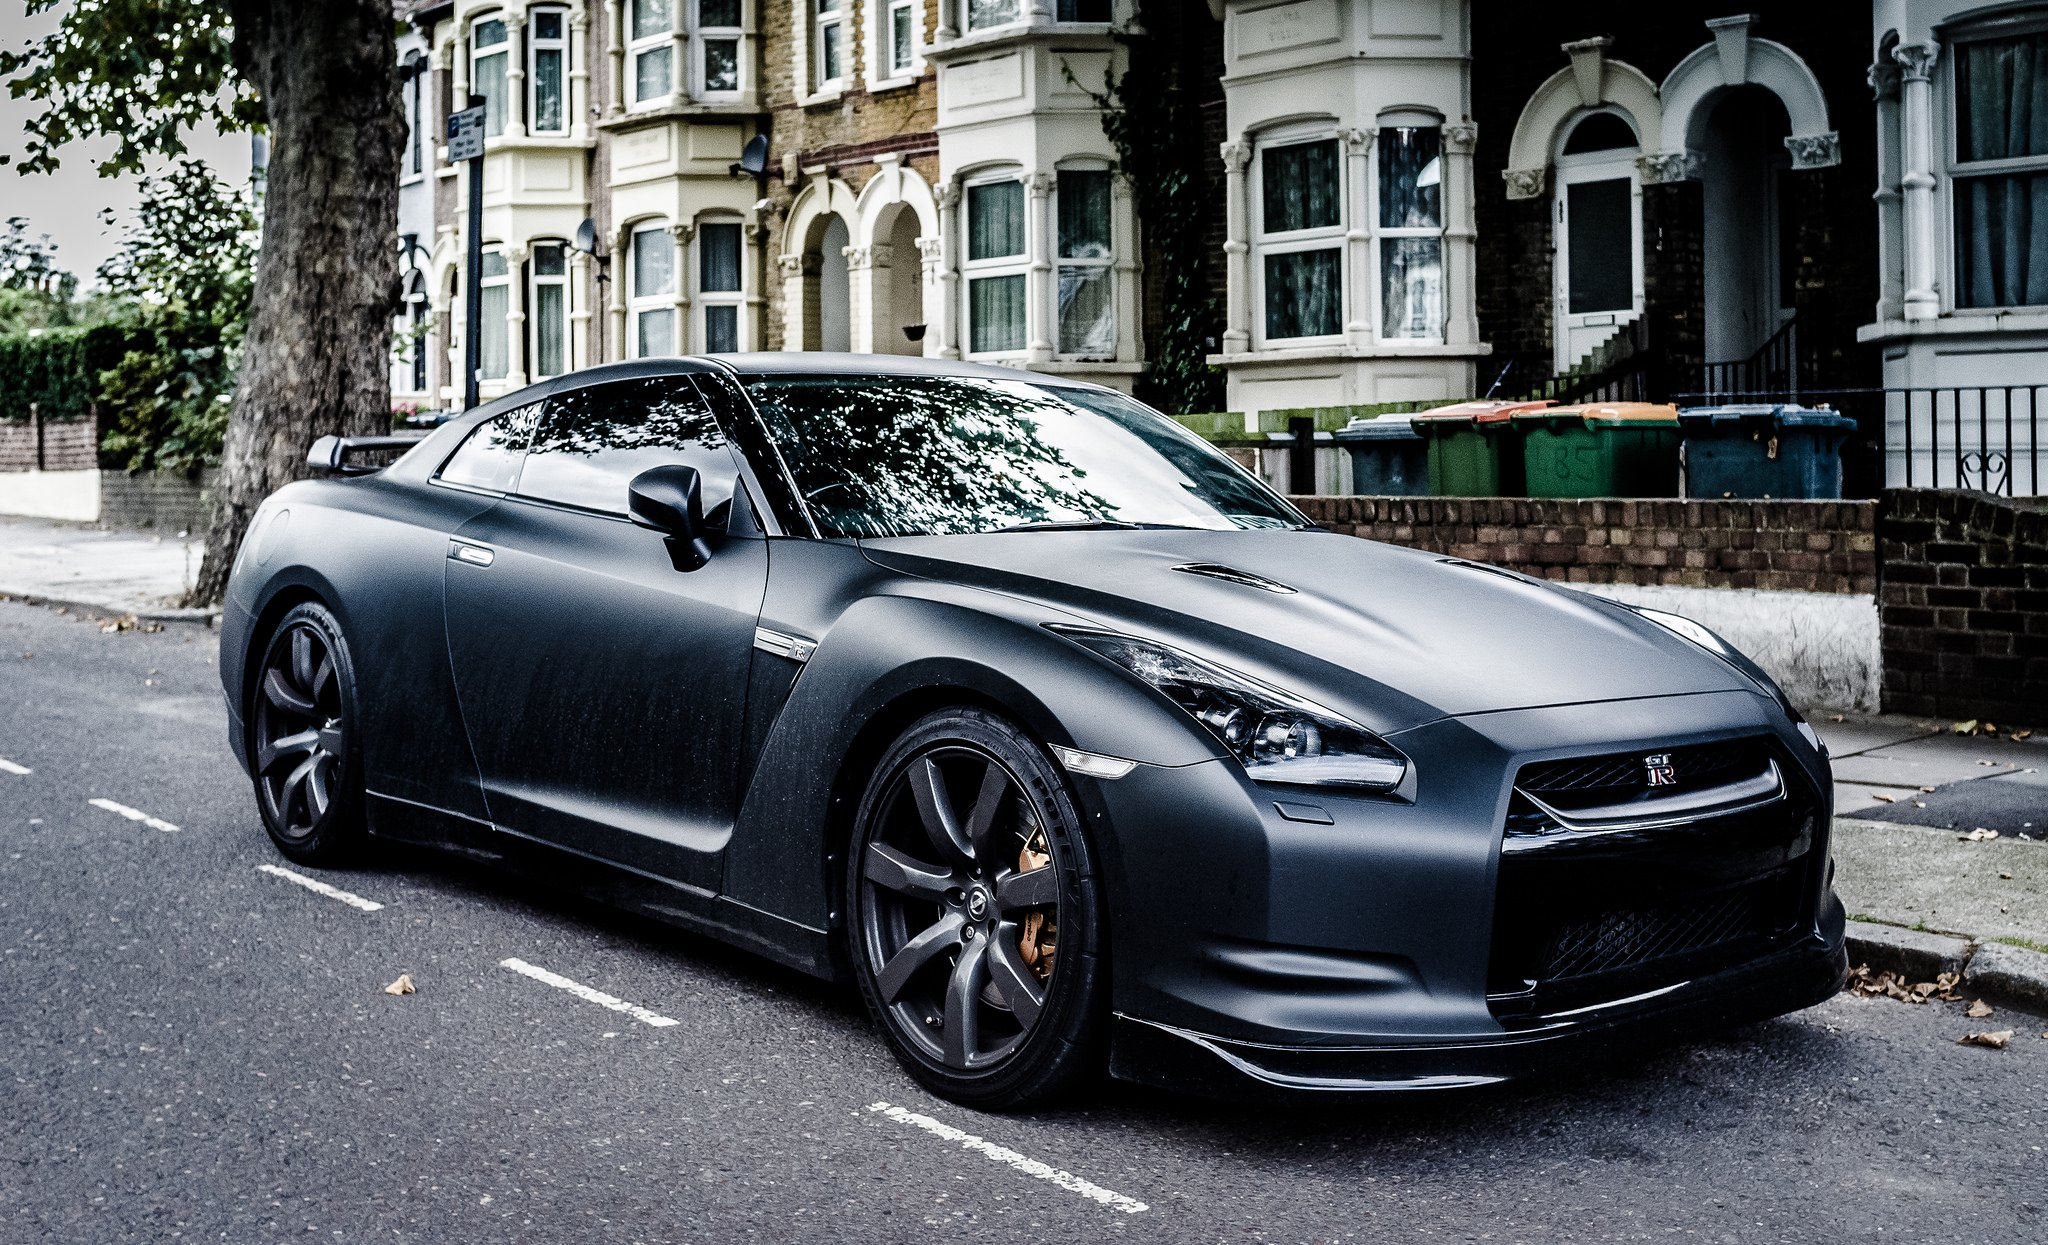 gt r nismo nissan r35 tuning supercar coupe japan noire black nero wallpaper 2048x1245. Black Bedroom Furniture Sets. Home Design Ideas